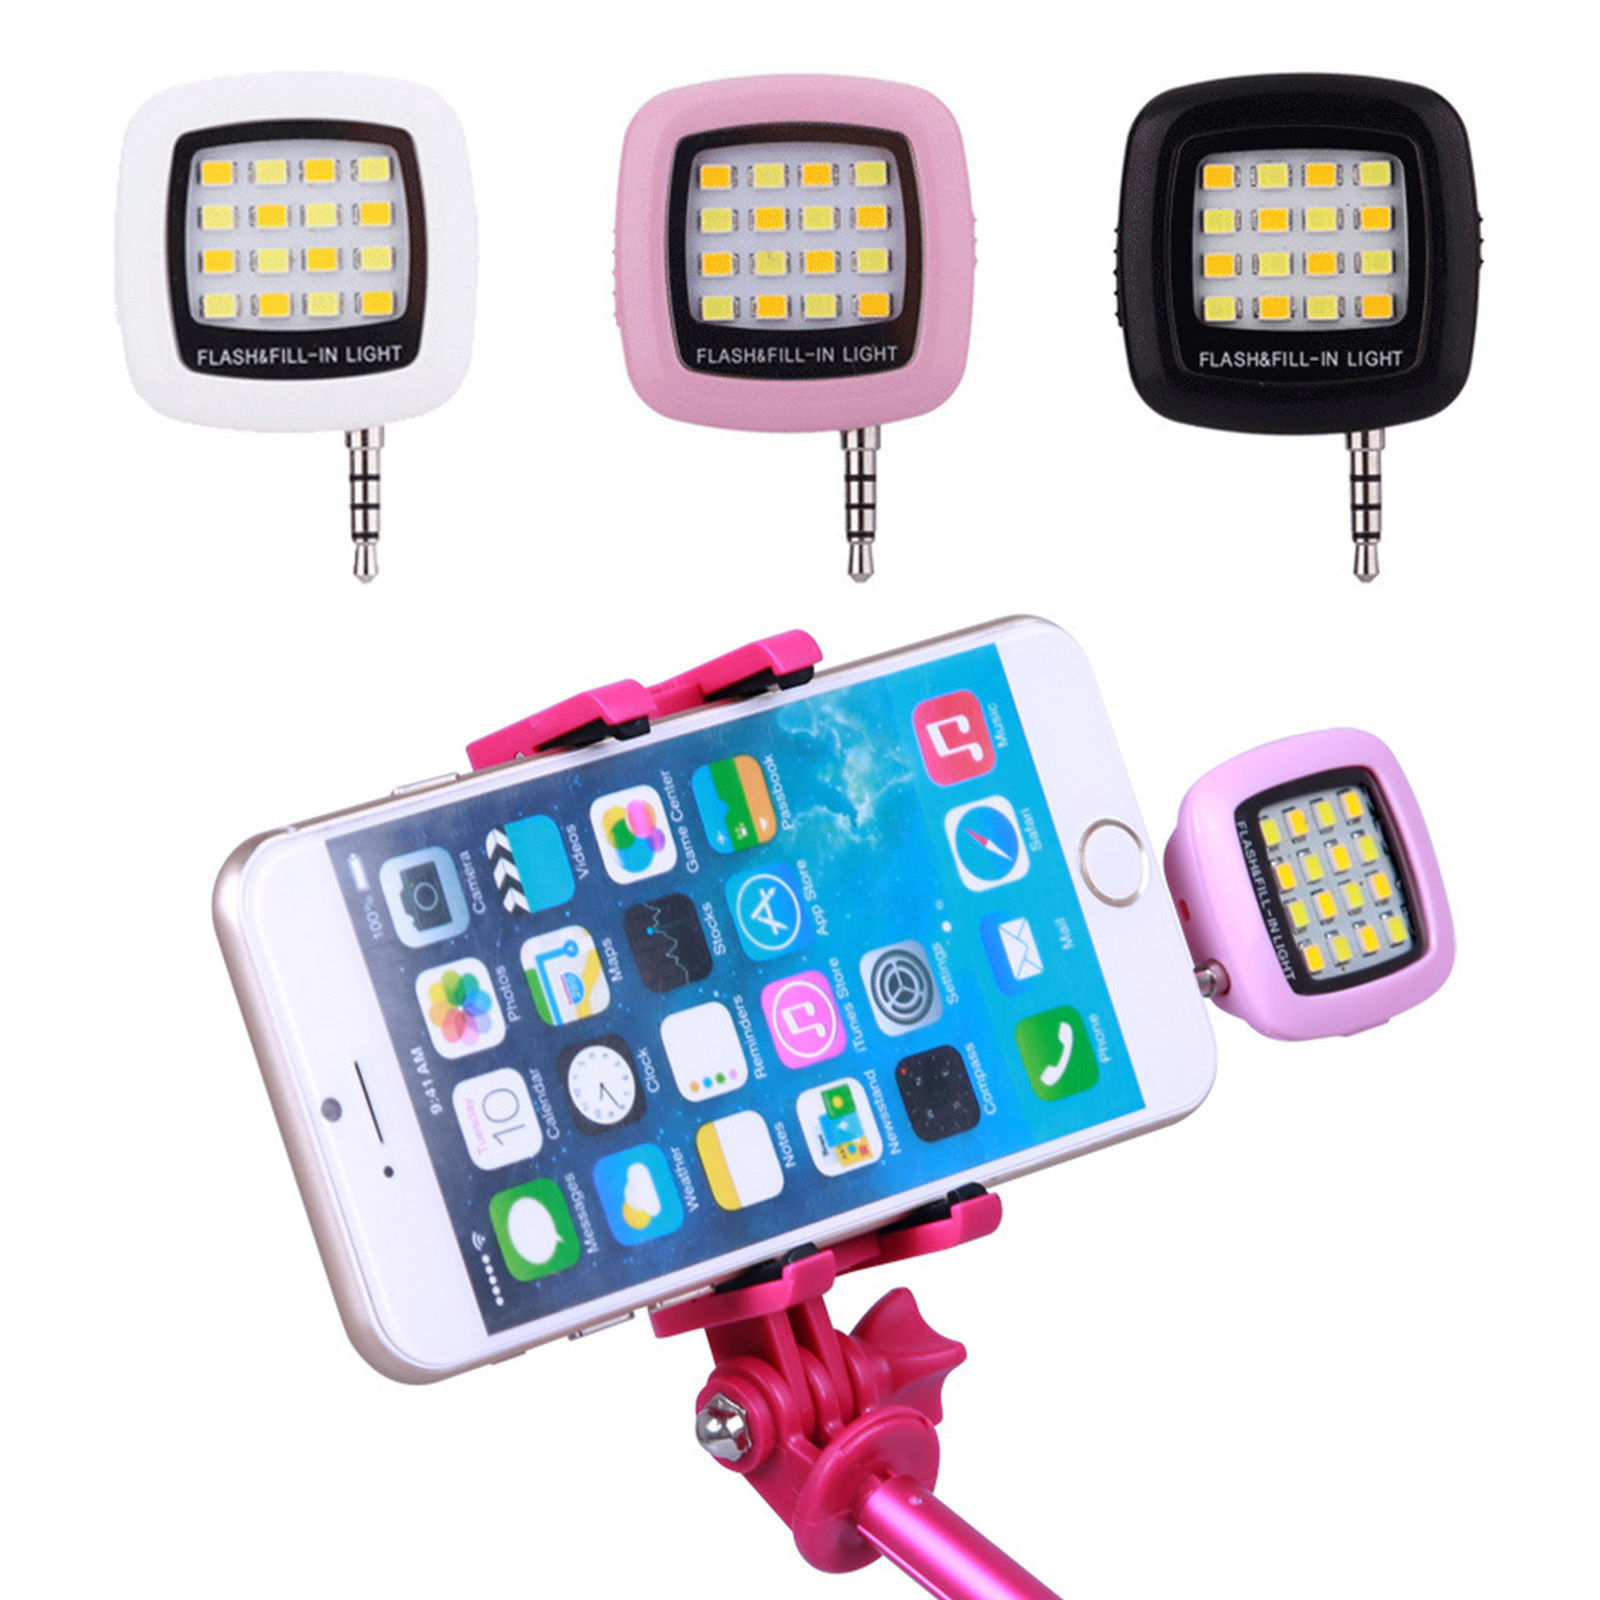 Smart Selfie Mini 16 LED Bulbs Camera Flash Light For Mobile Phone iOS Android